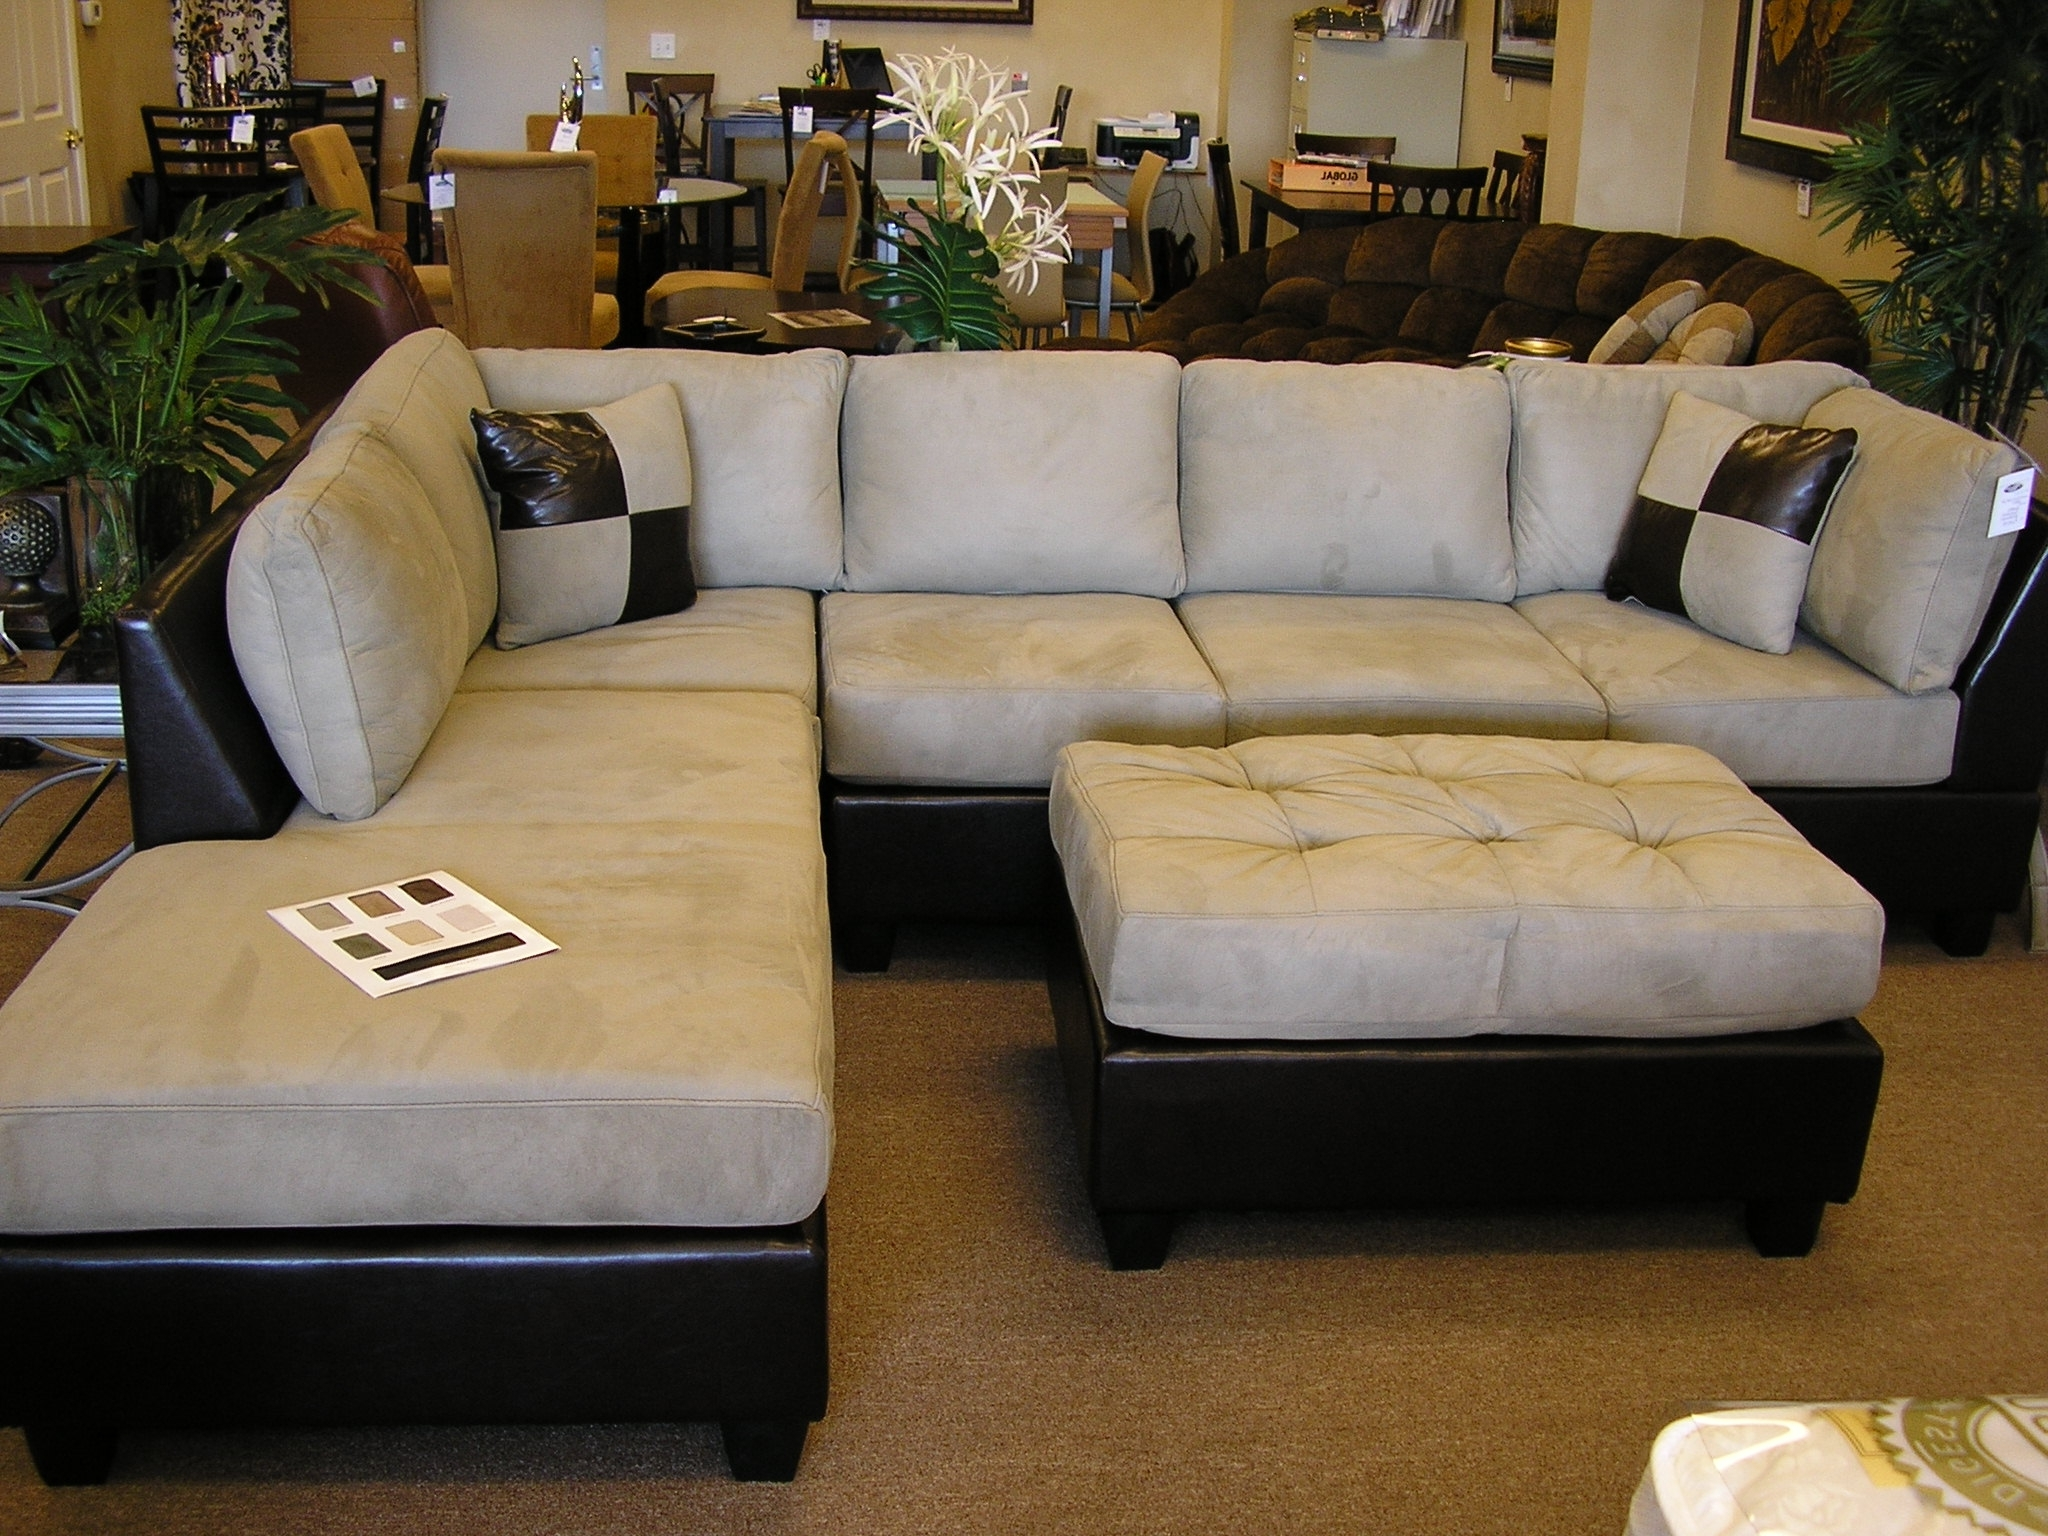 Popular Couches With Chaise Lounge With Regard To Amazing Sectional Sofa With Chaise Lounge 32 On Sofas And Couches (View 10 of 15)